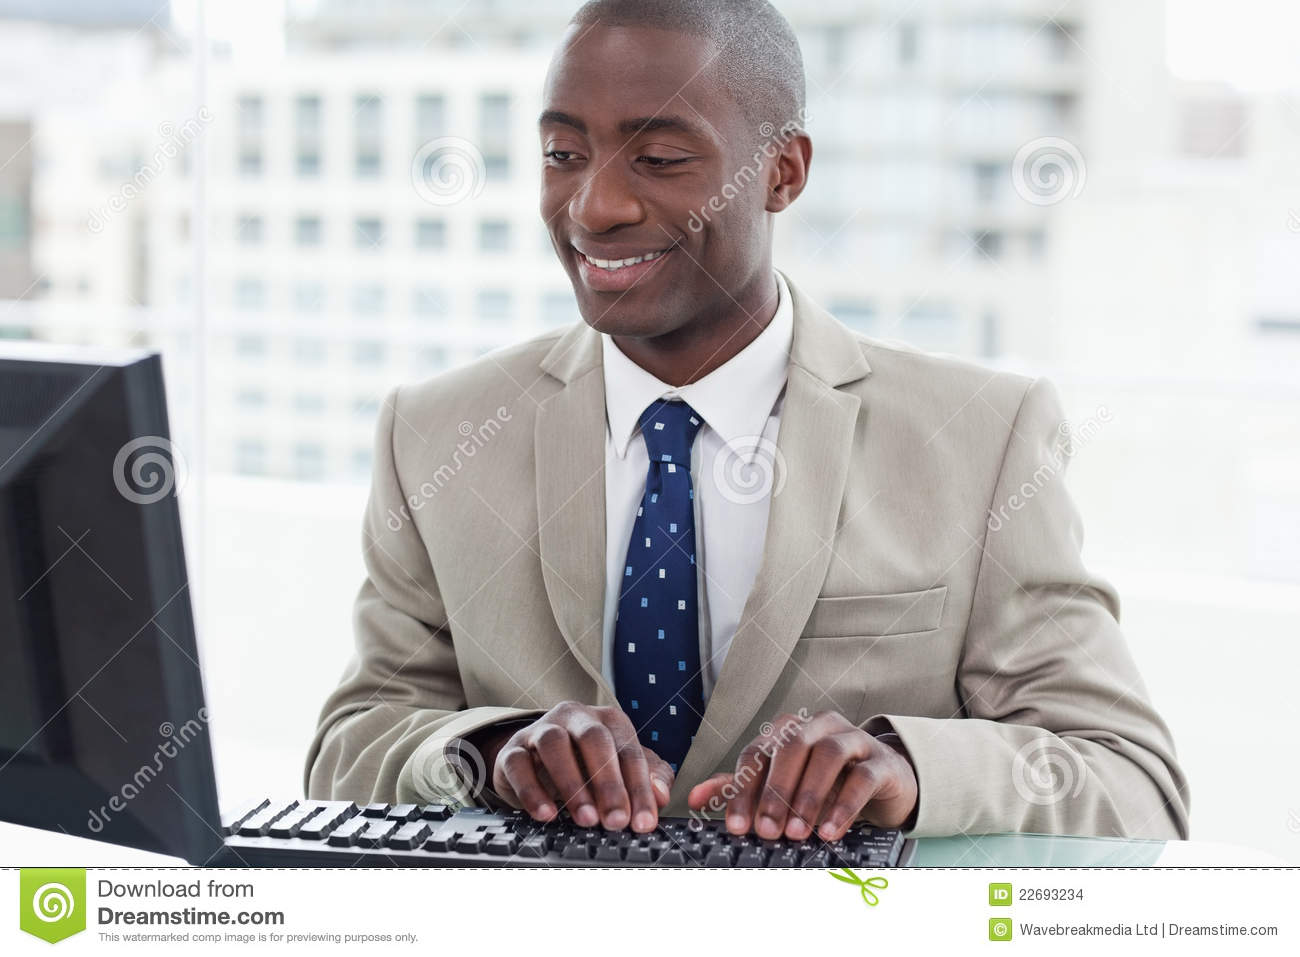 Smiling office worker using a computer in his office. mr: yes; pr: no